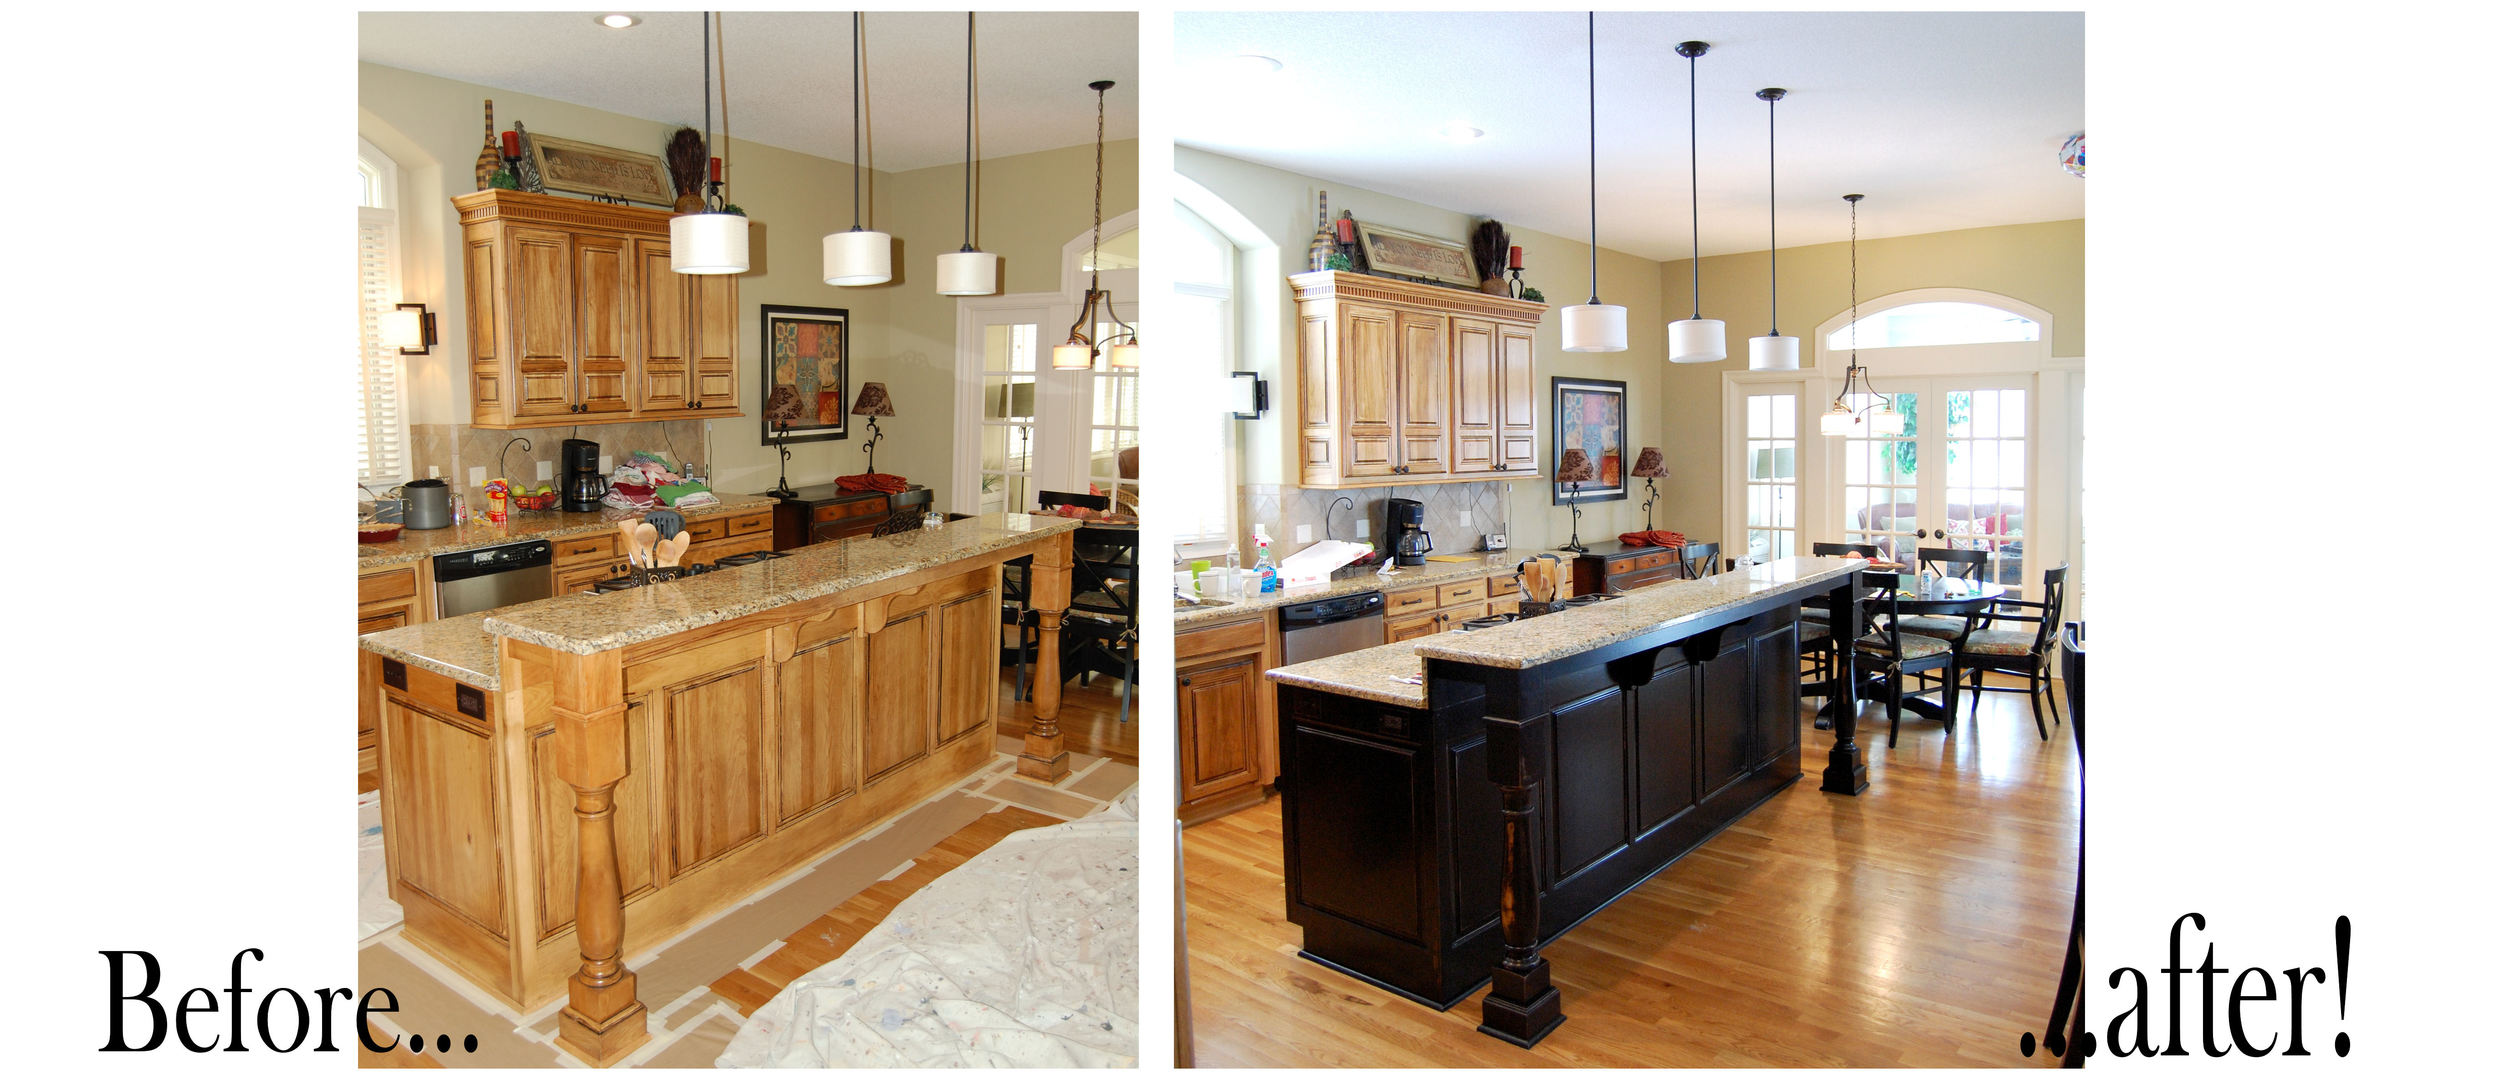 before and after black kitchen island.jpg